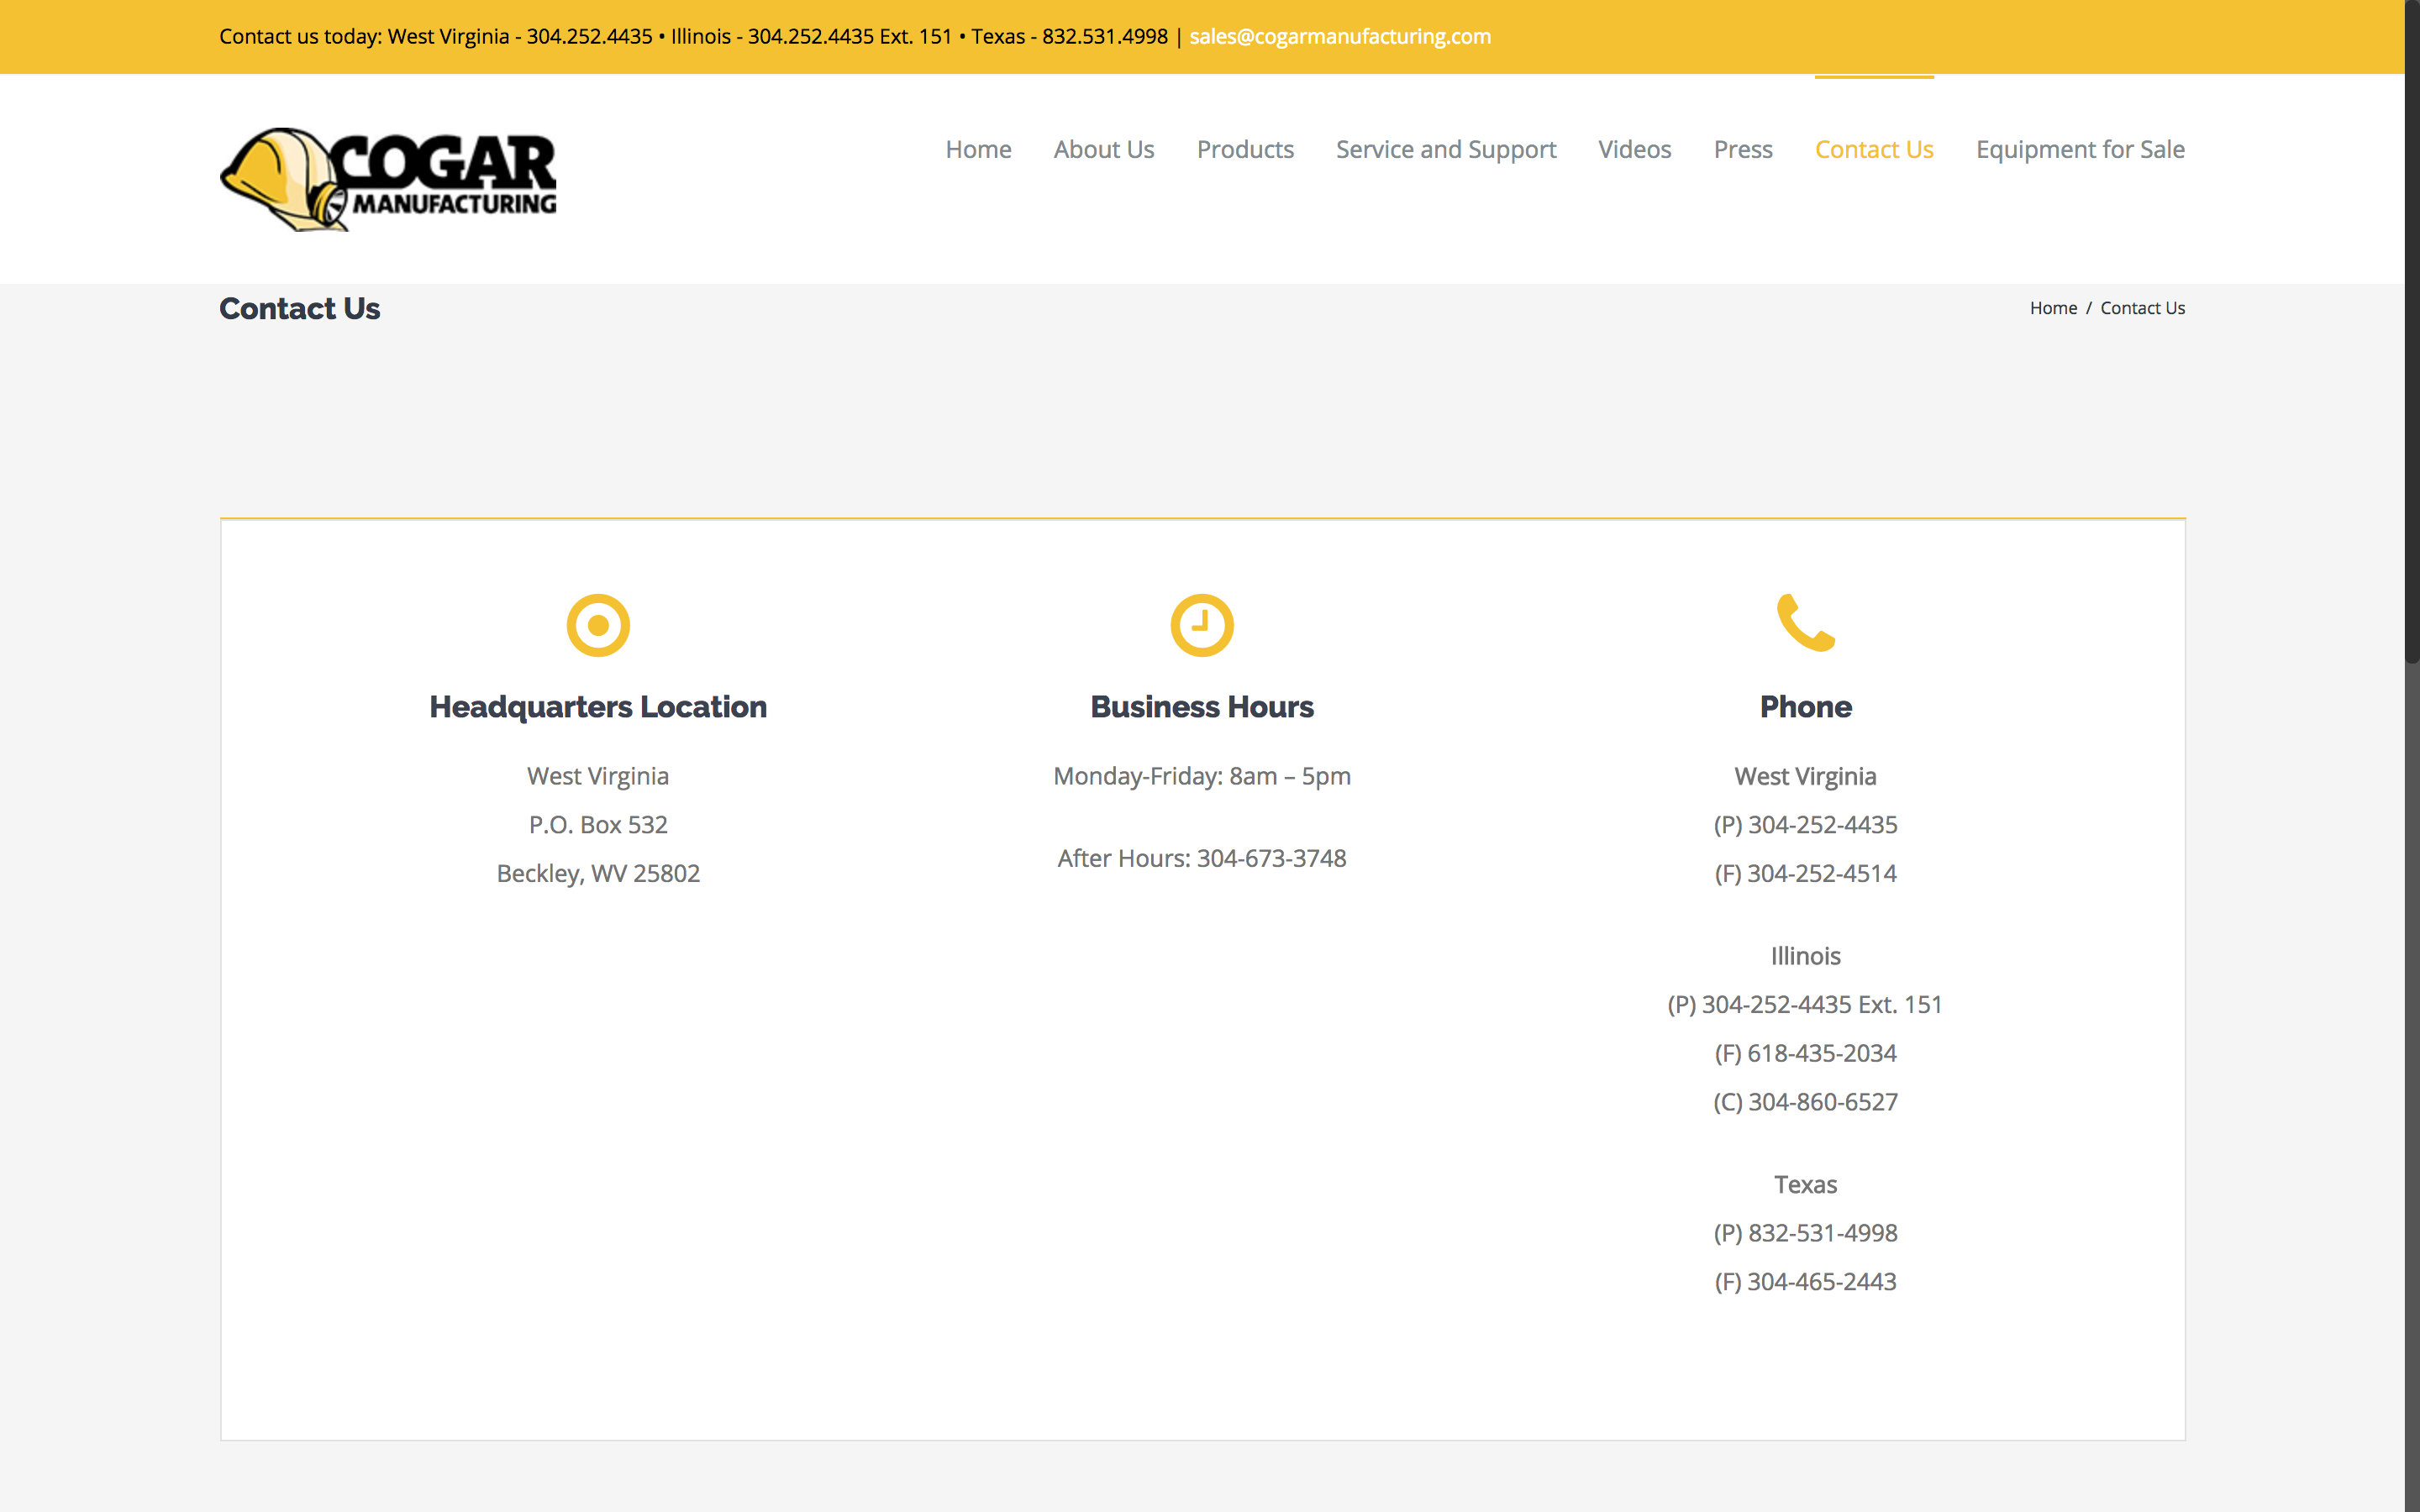 Cogar Manufacturing Contact Us Page Web Design by Cucumber and Co Best websites in WV